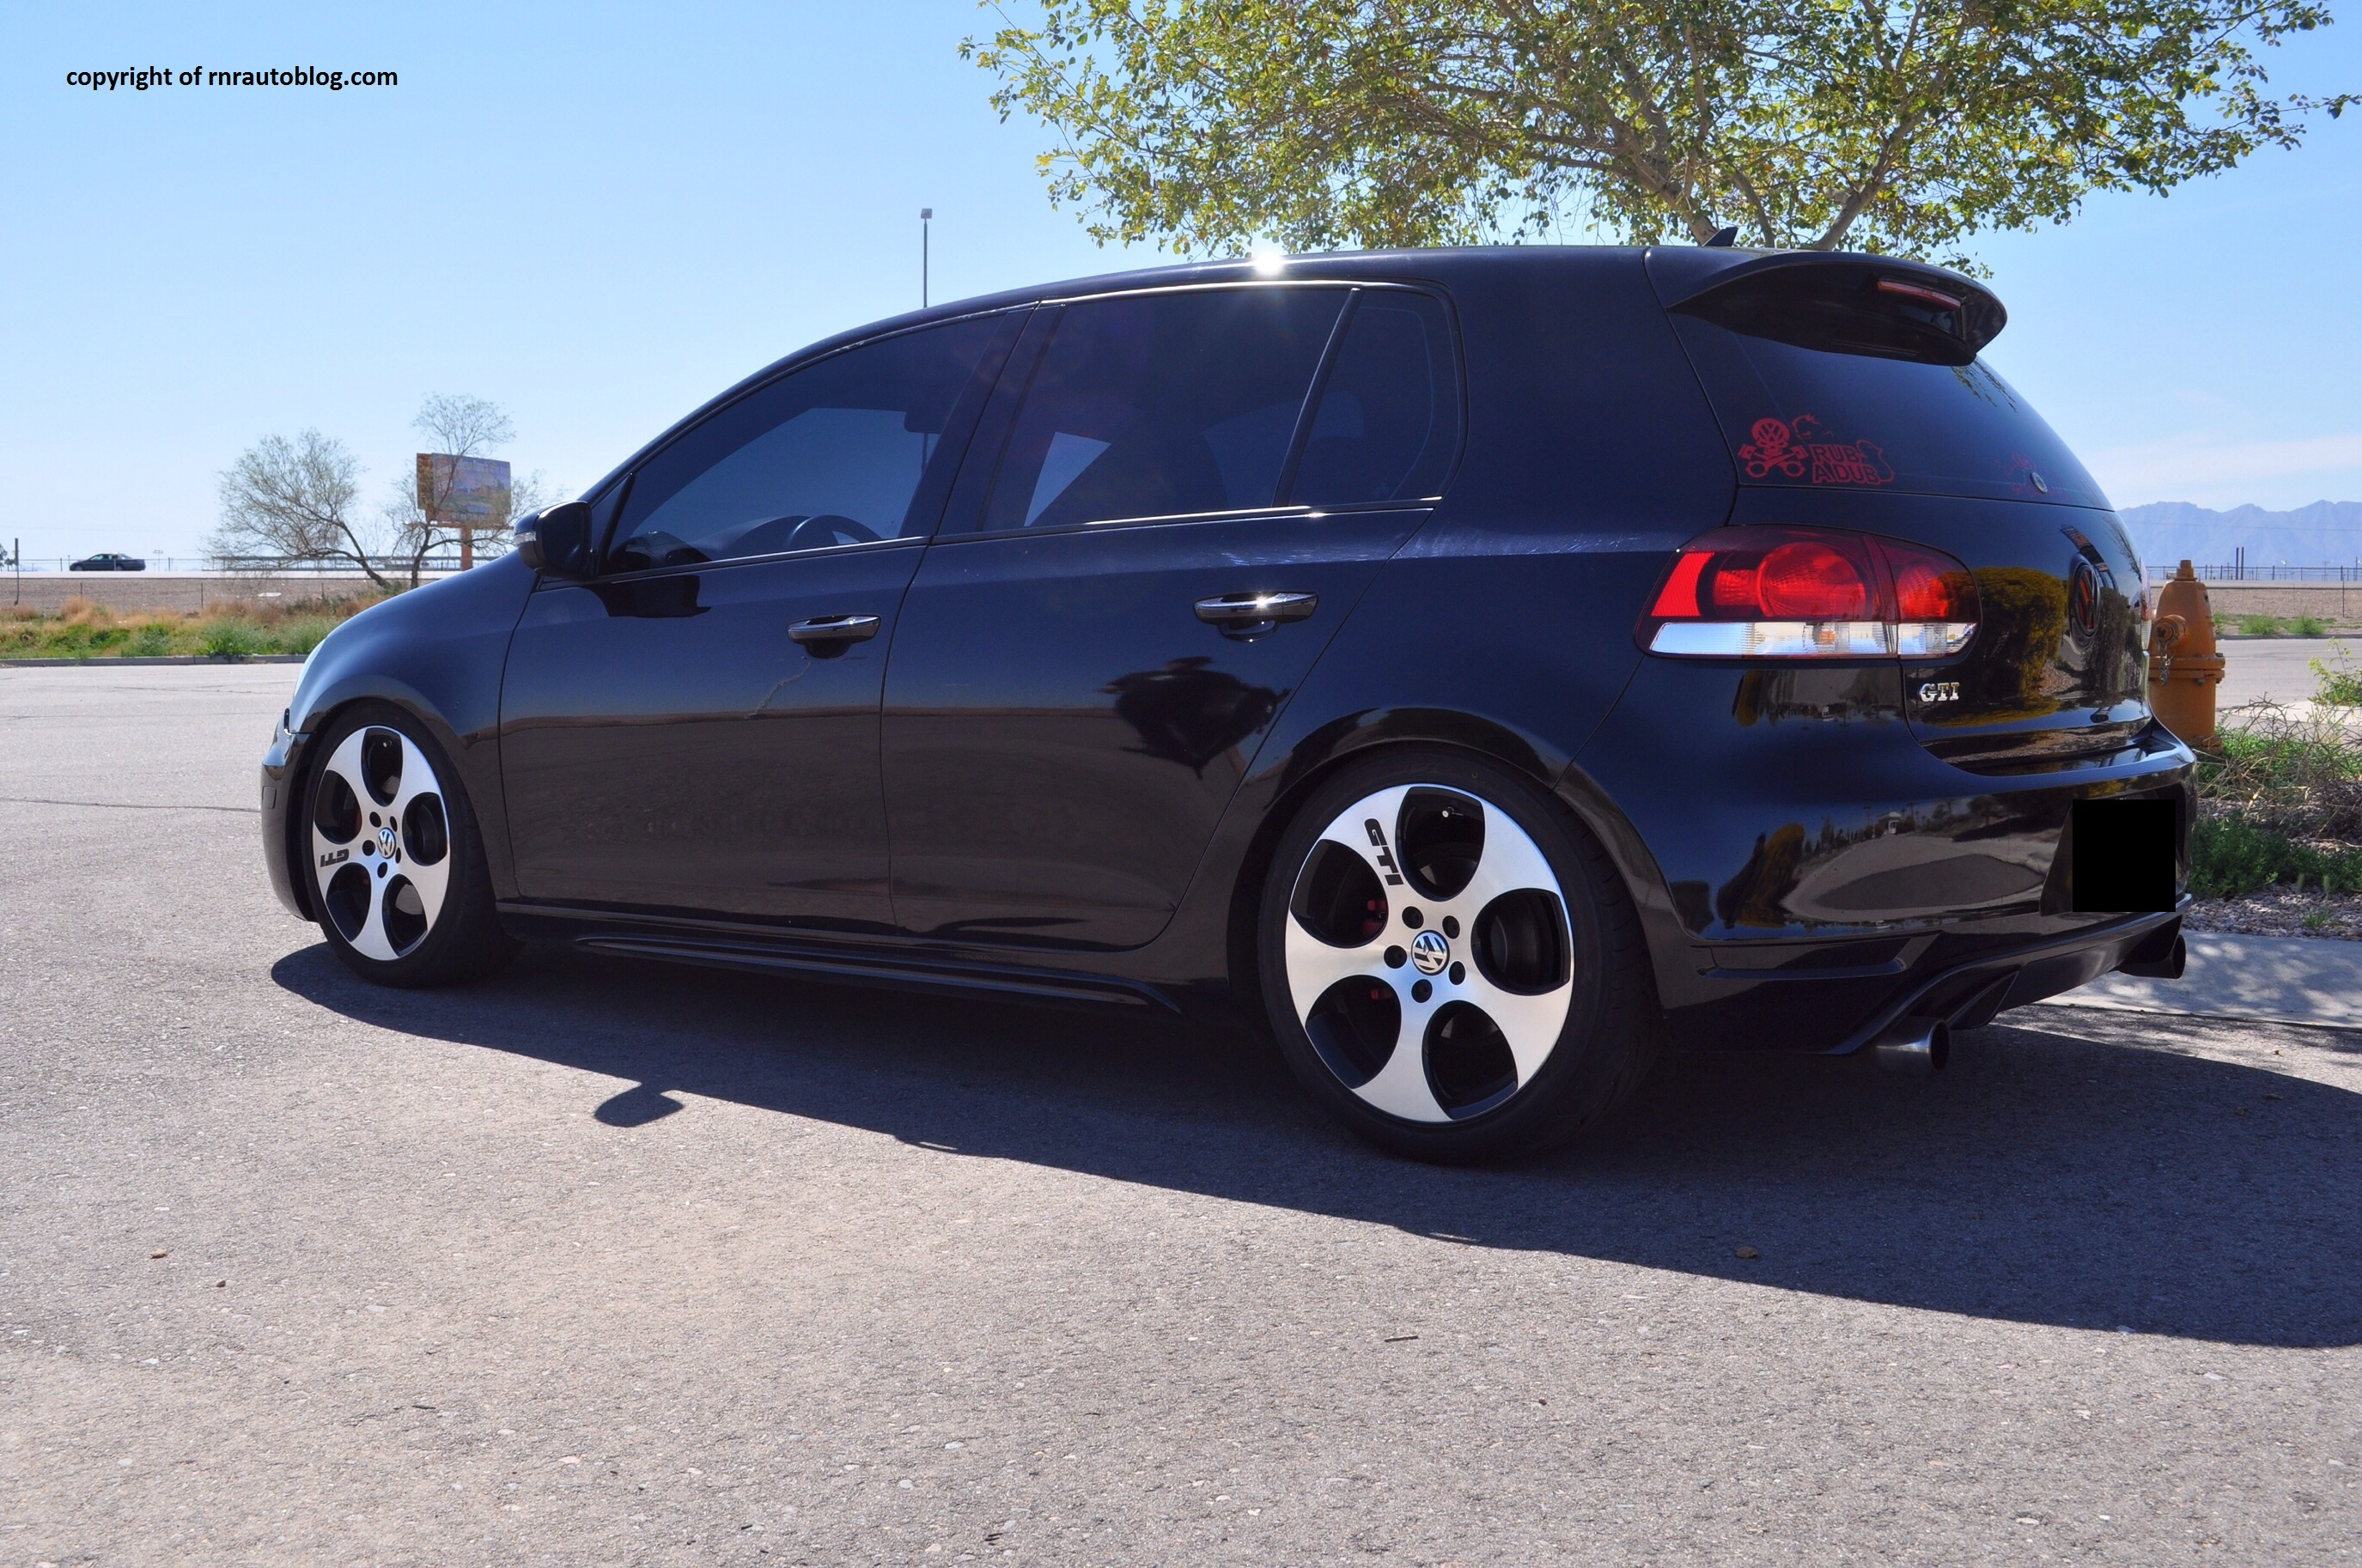 2012 volkswagen golf gti review rnr automotive blog. Black Bedroom Furniture Sets. Home Design Ideas